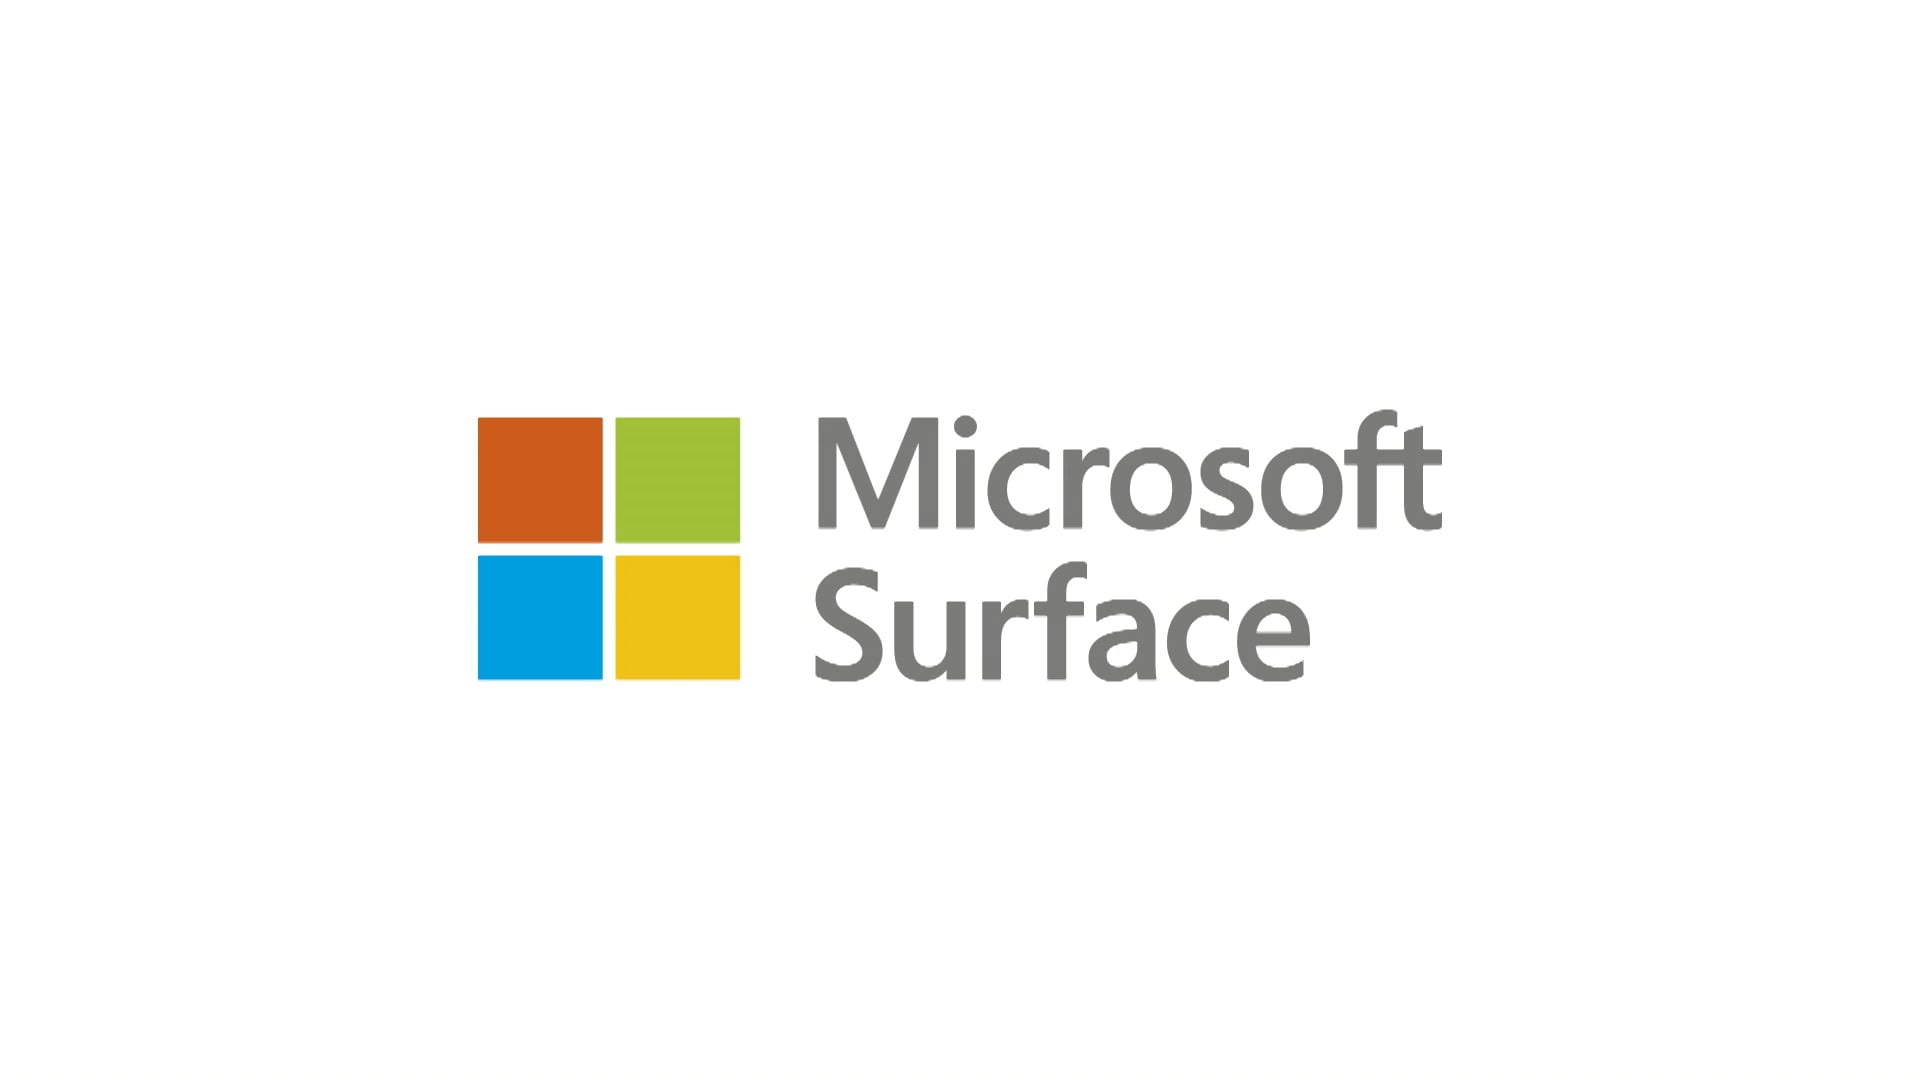 An Evening With Allan Hinton - Microsoft Surface - Facebook Live Broadcast.